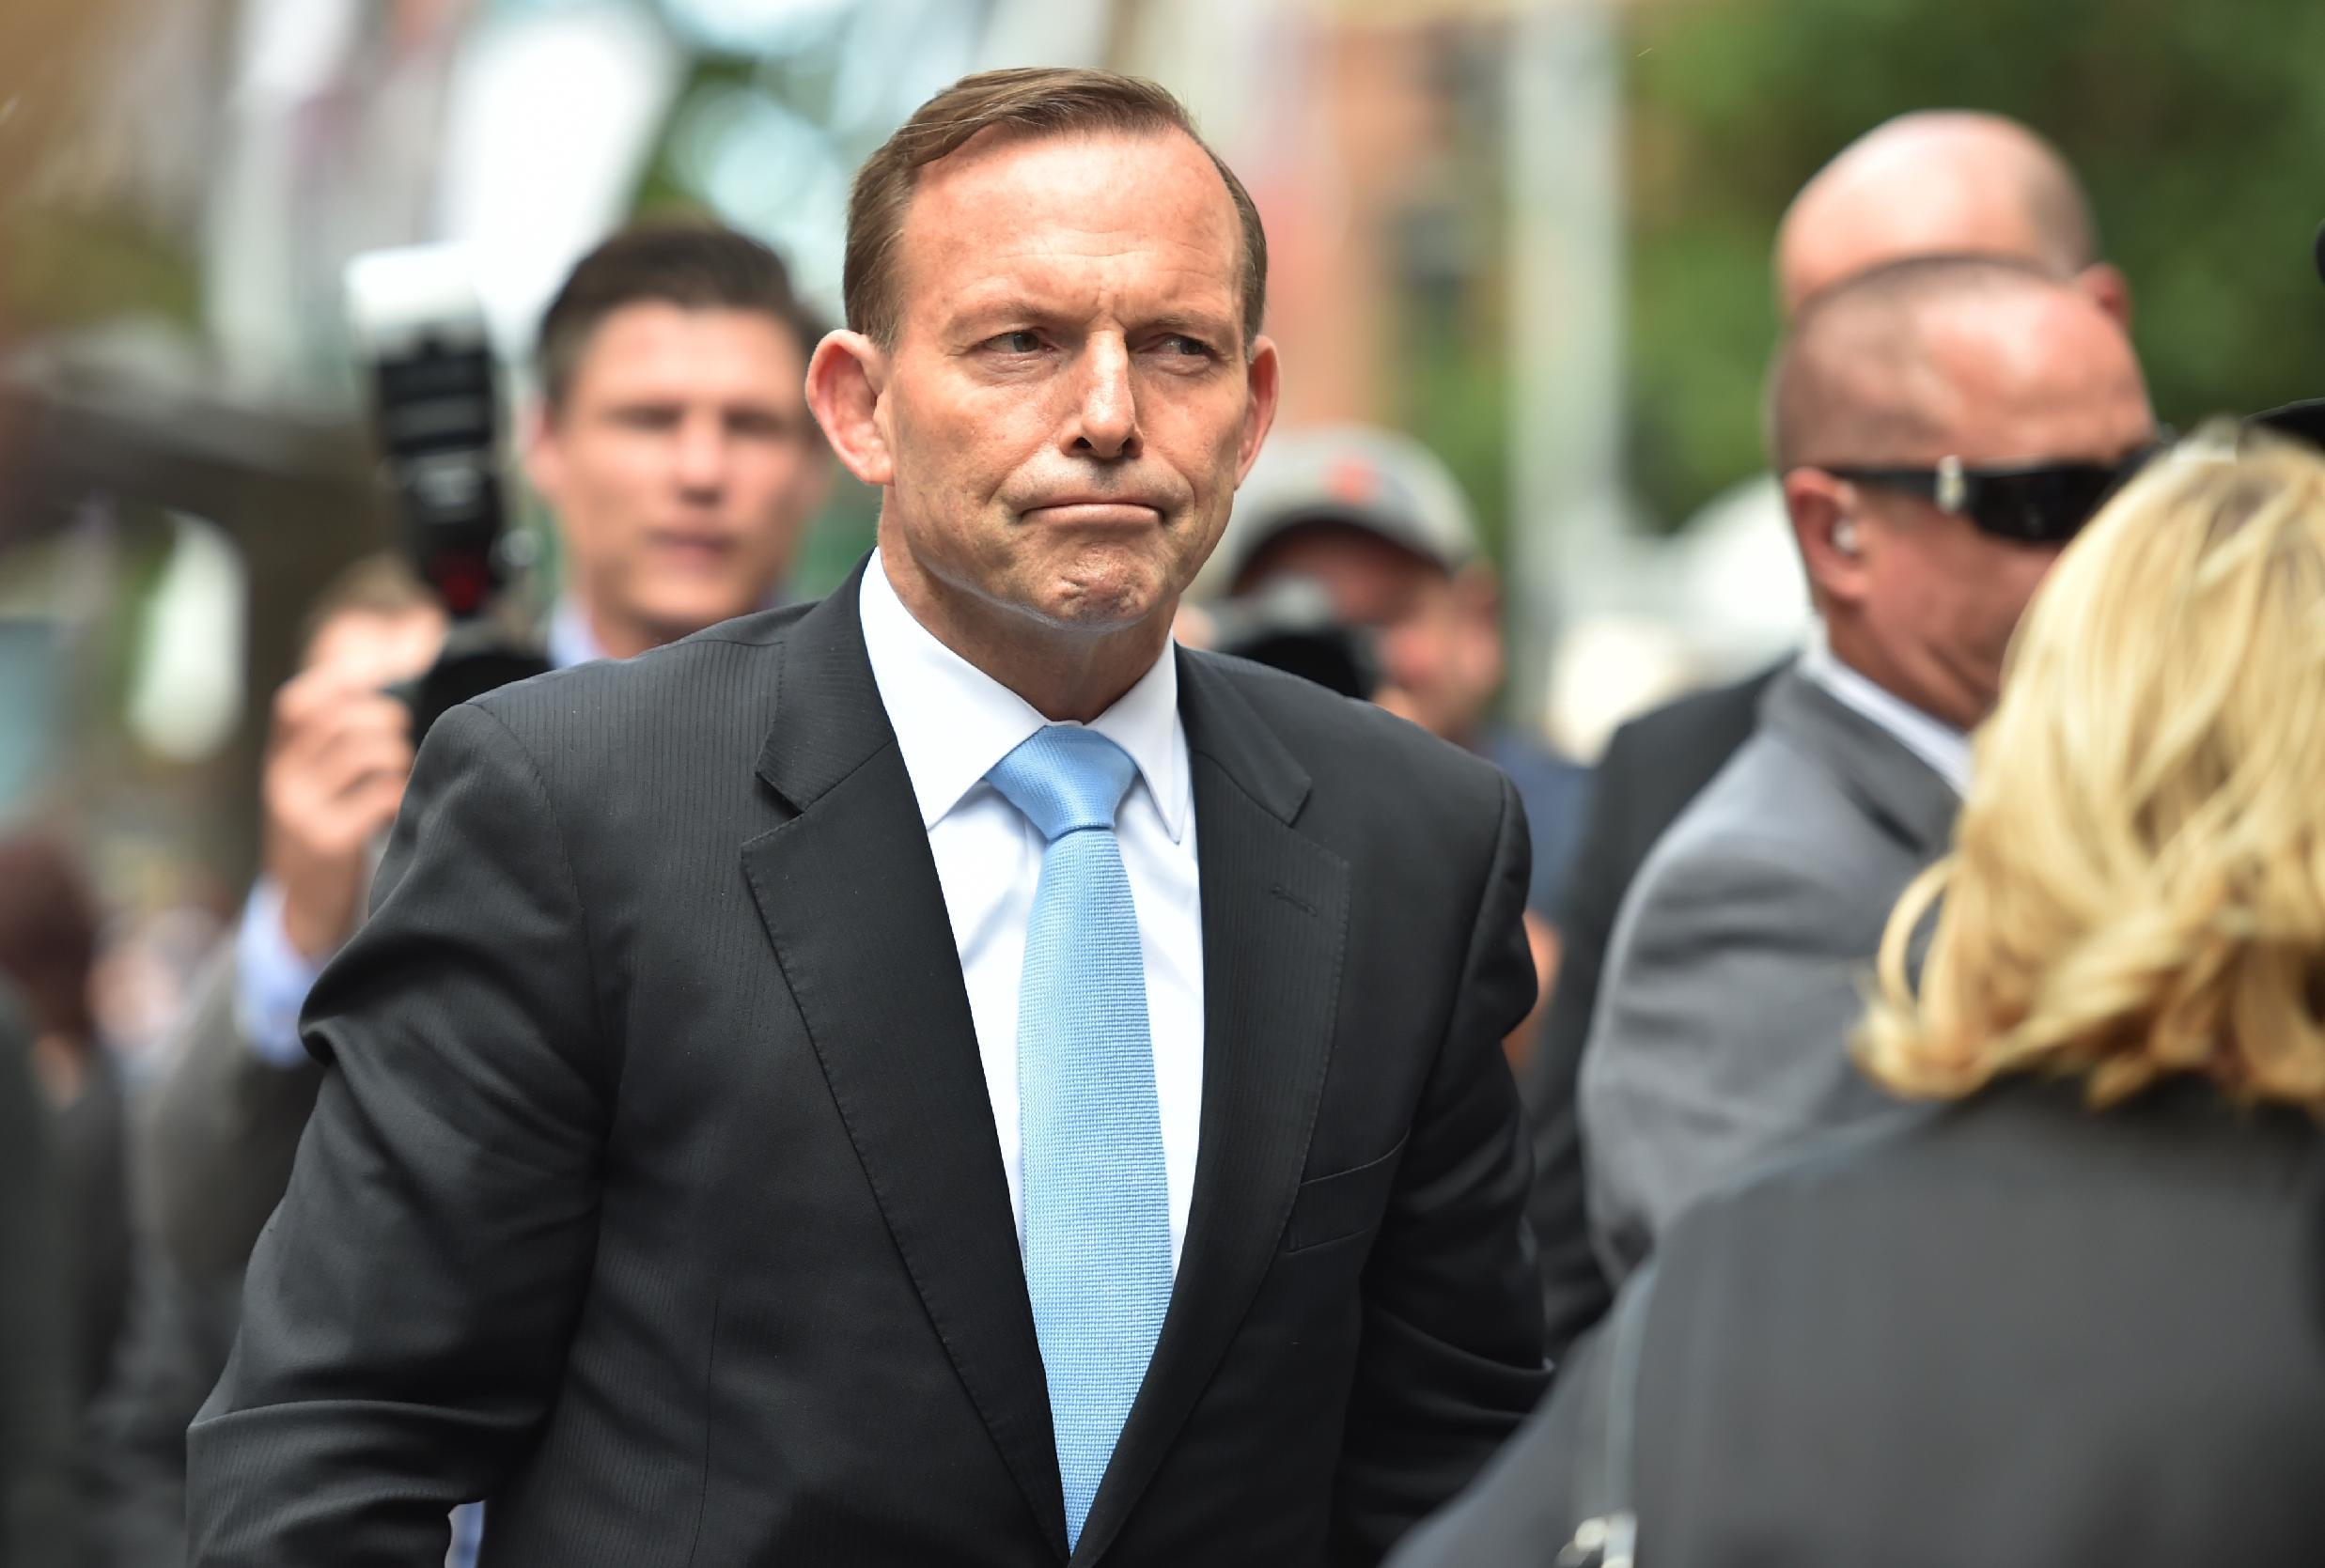 Australian PM takes royal knighthood storm 'on the chin'